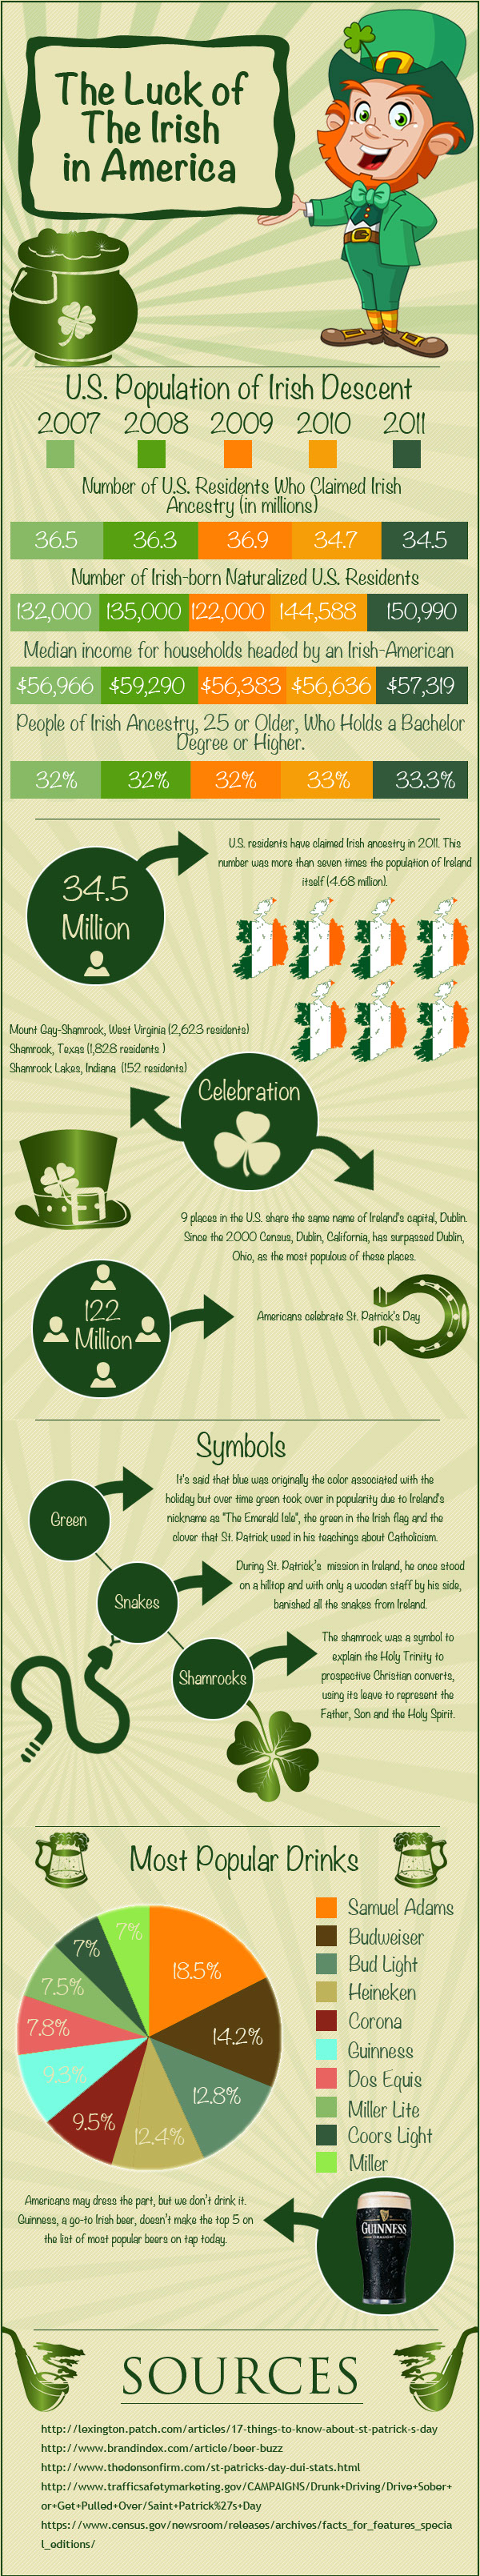 St Patrick's Day in America-Infographic